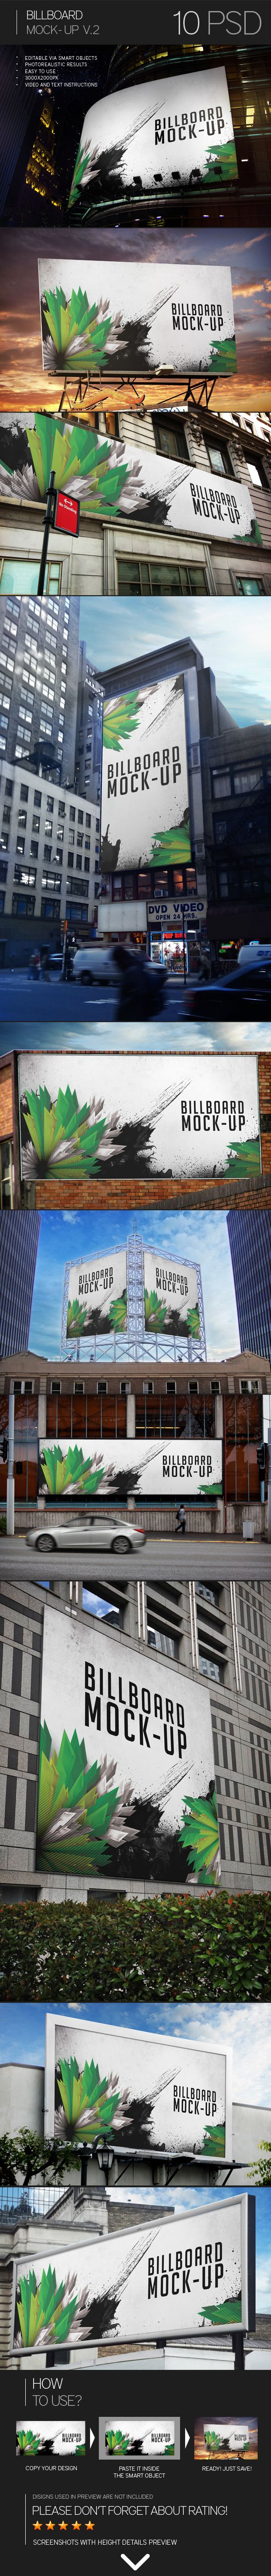 Billboard Mock-Up Vol.2 on Behance